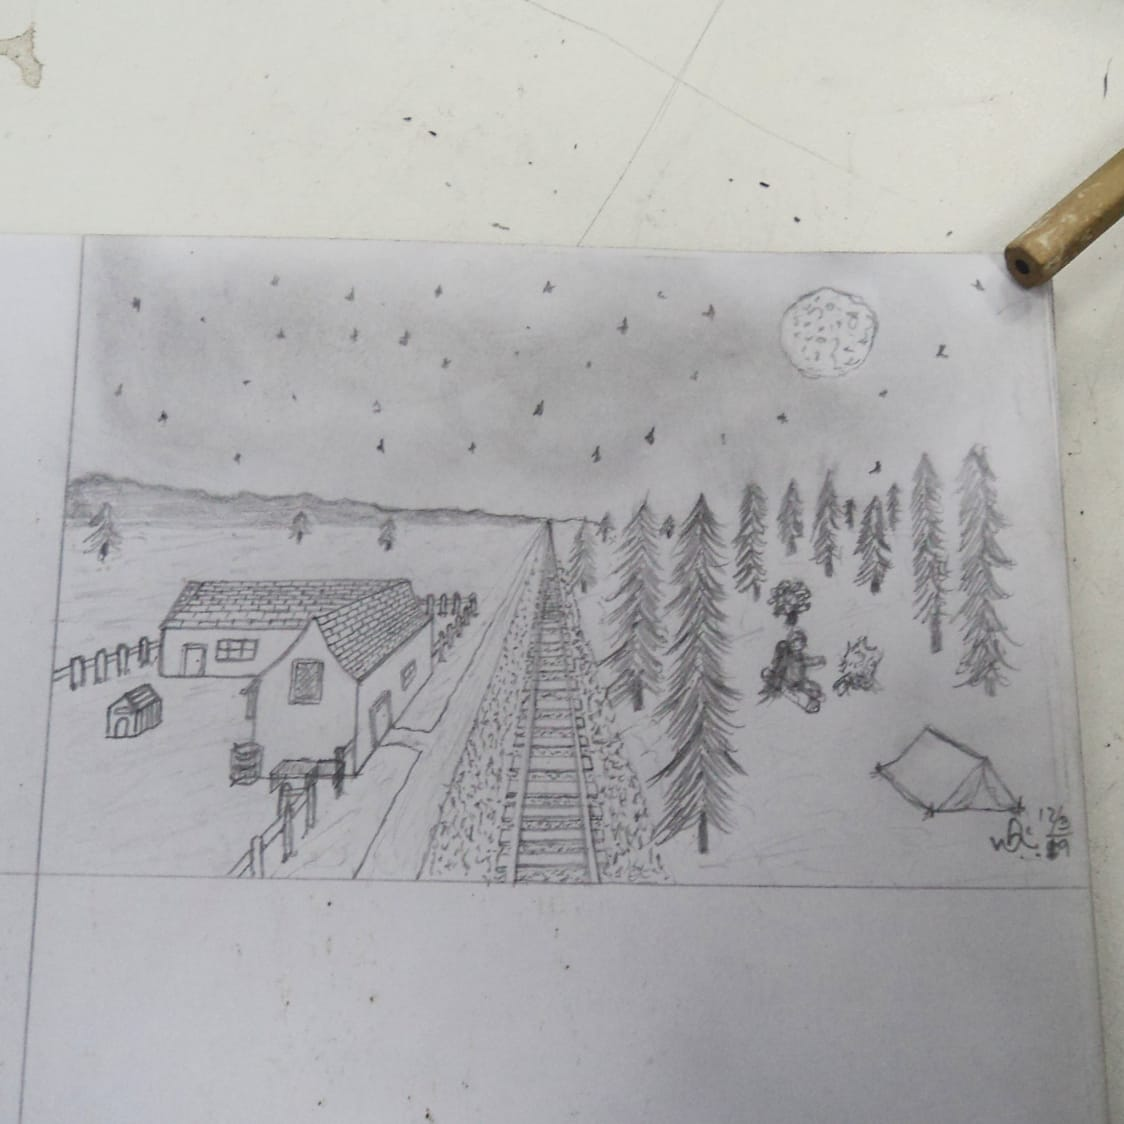 My first attempt at drawing perspective